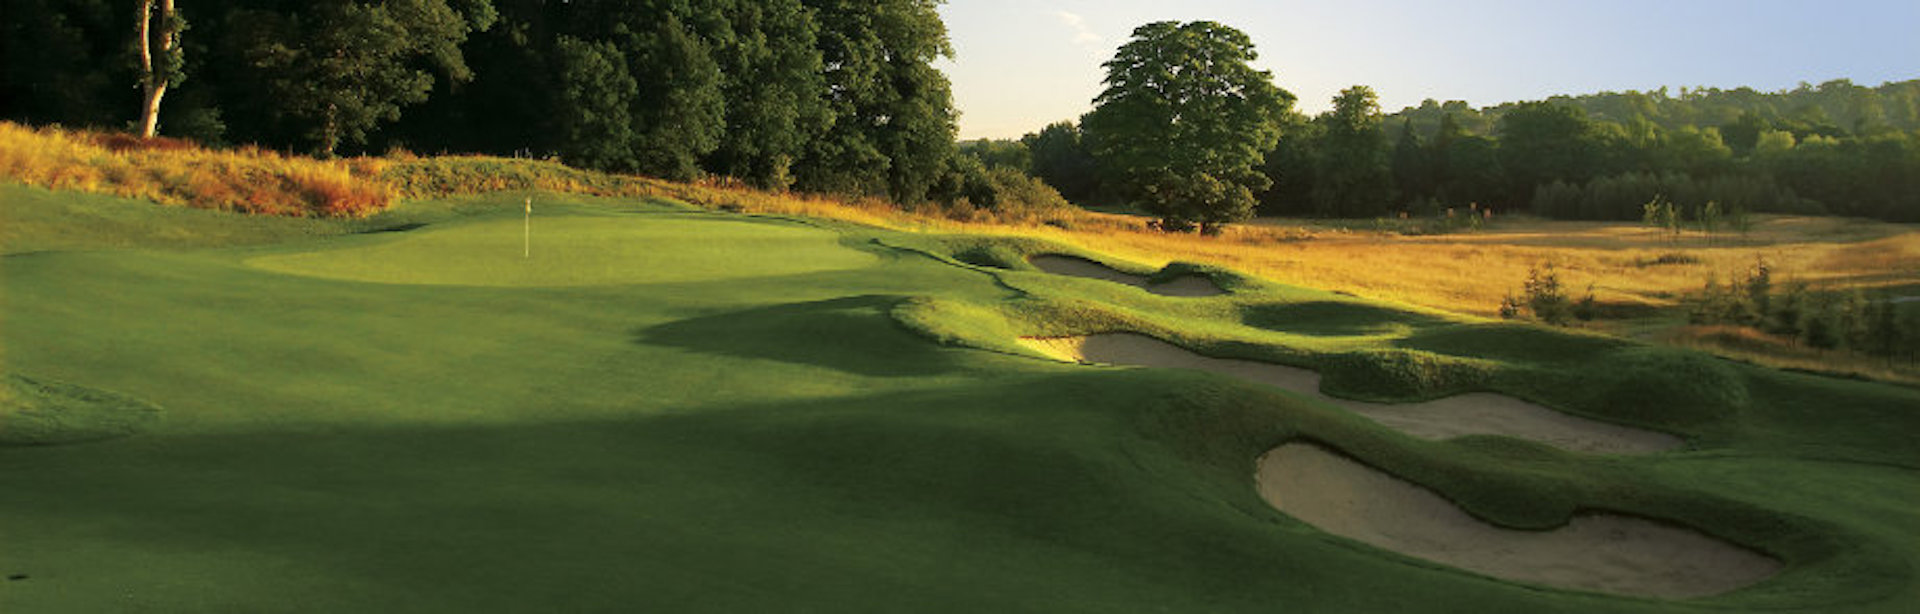 The Grove gears up for British Masters